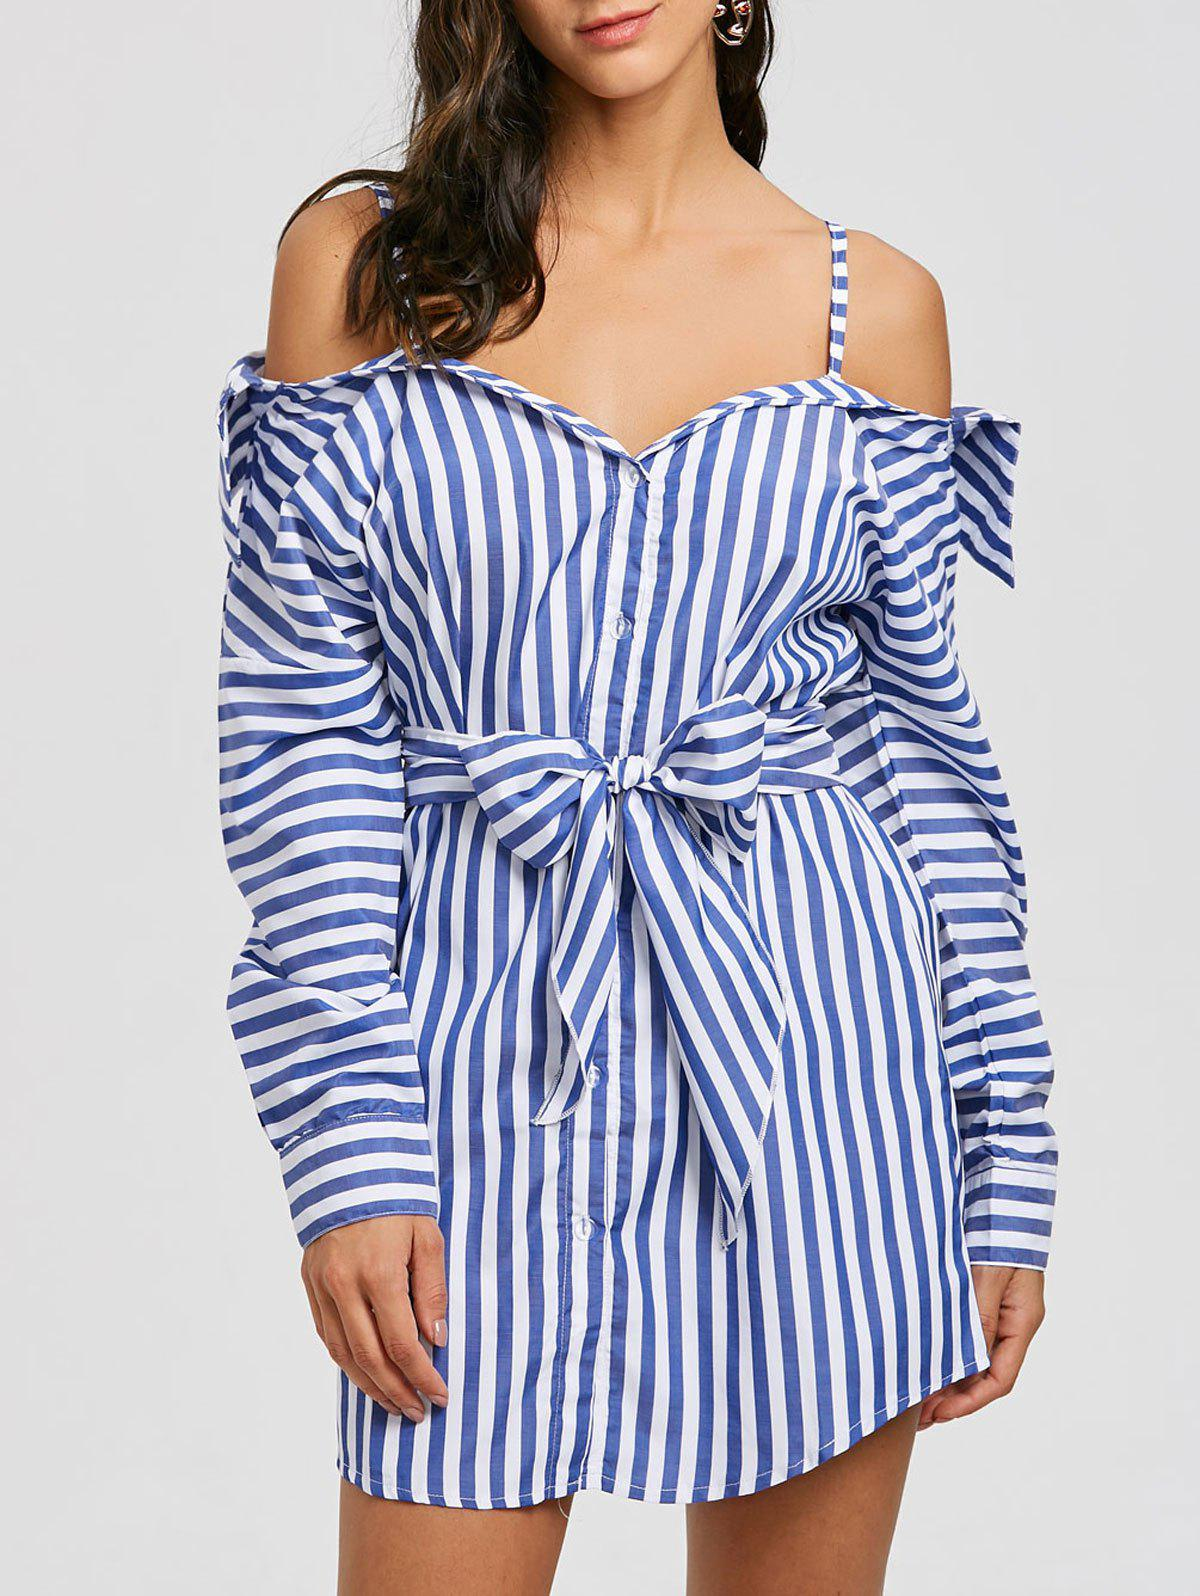 Button Up Striped Spaghetti Strap Dress - BLUE S